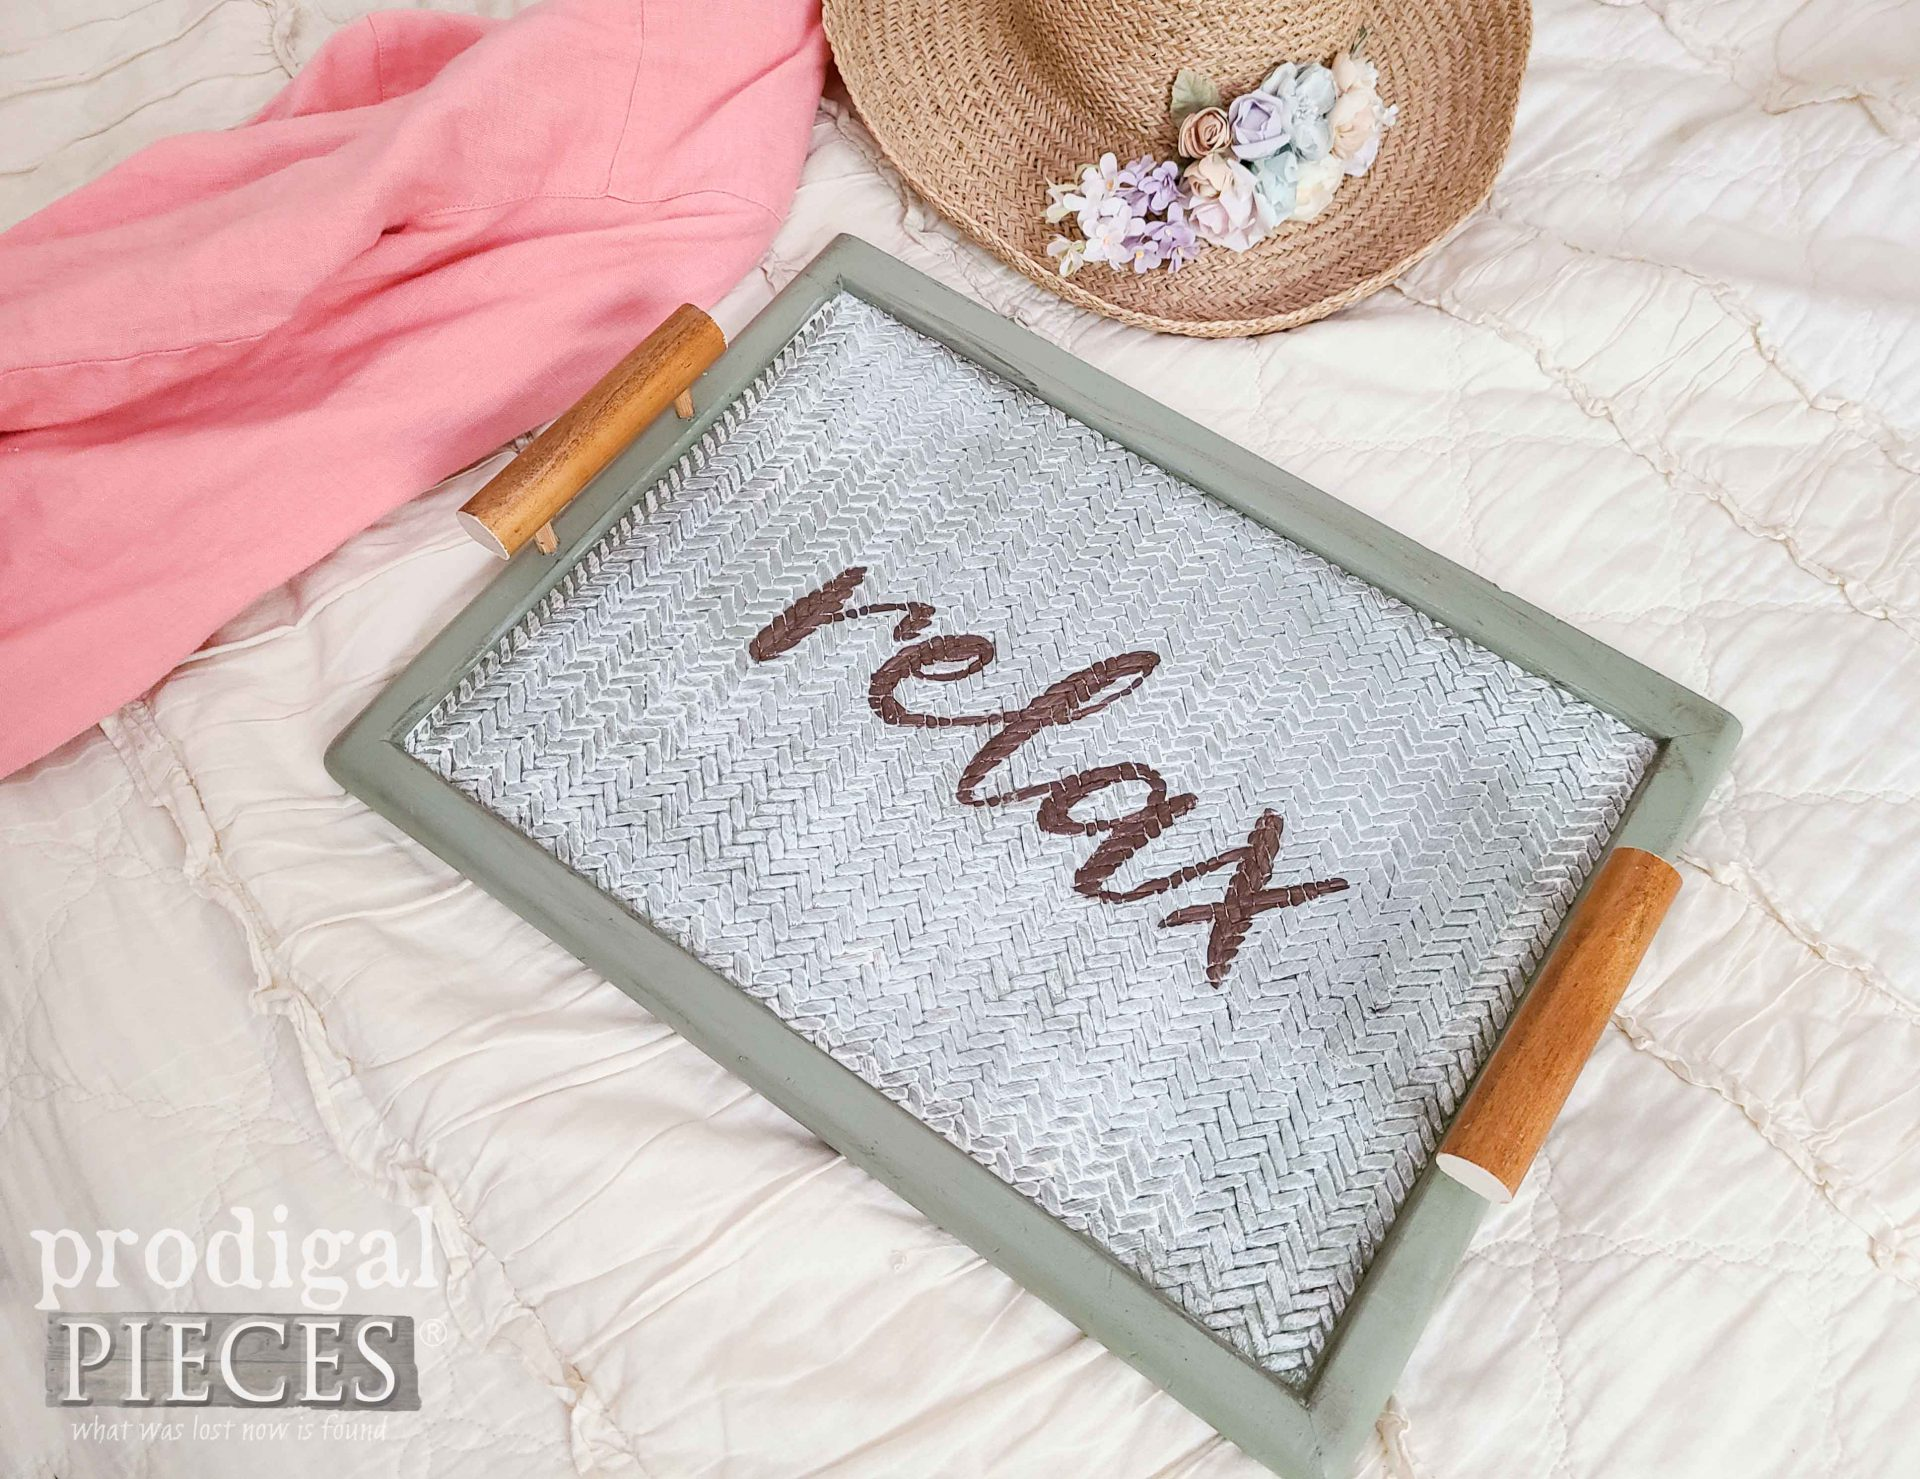 Hand-Painted Serving Tray from Broken Furniture by Larissa of Prodigal Pieces | prodigalpieces.com #prodigalpieces #diy #upcycled #home #farmhouse